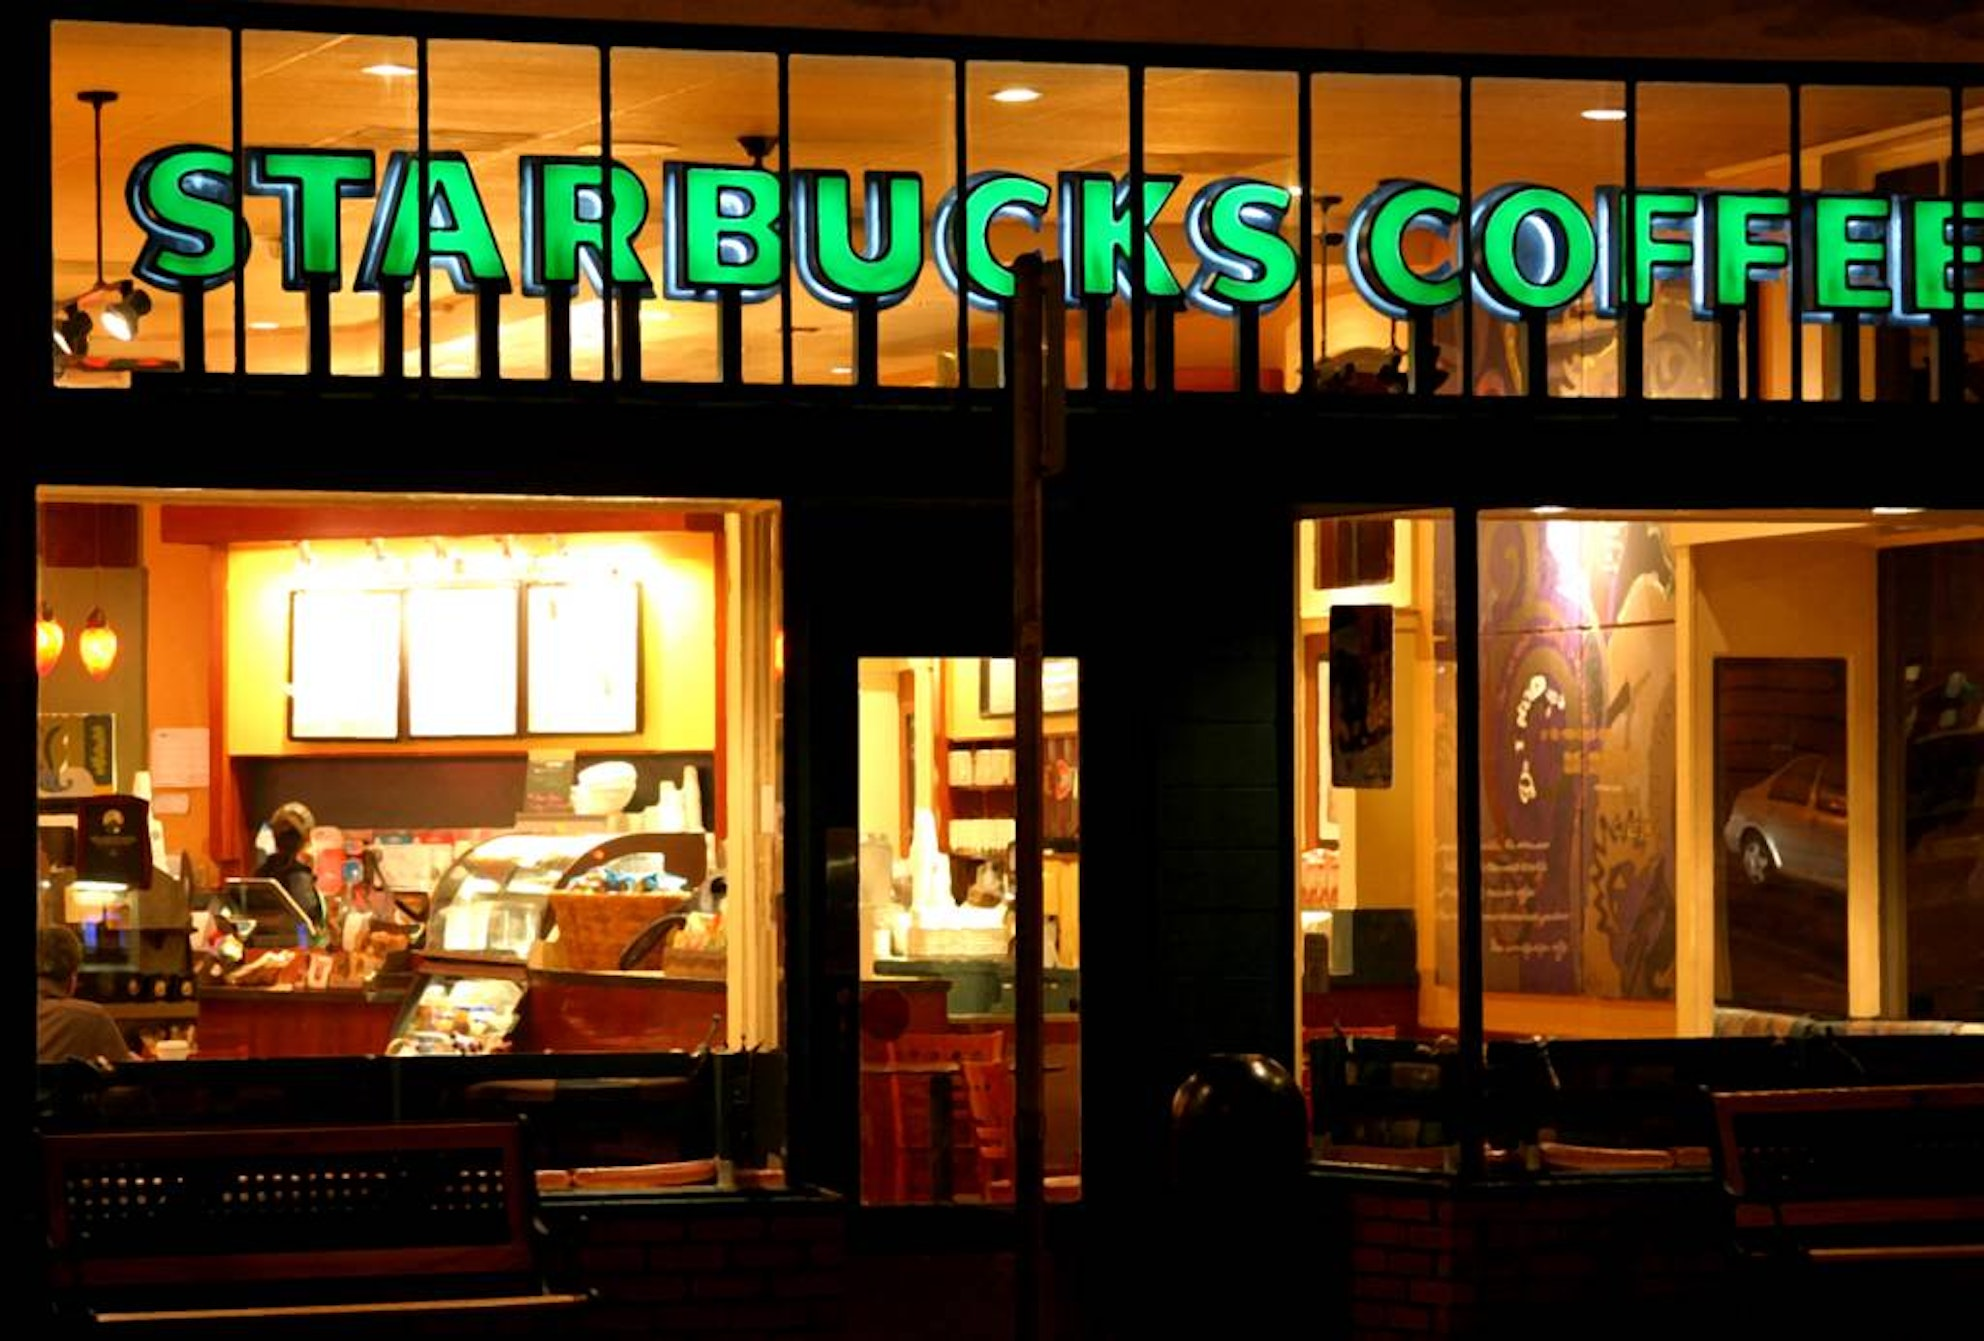 starbucks takes advantage of a new pay method to satisfy customers A former starbucks employee who once worked i could never do anything to satisfy people of all races frequently came into the store to take advantage of.